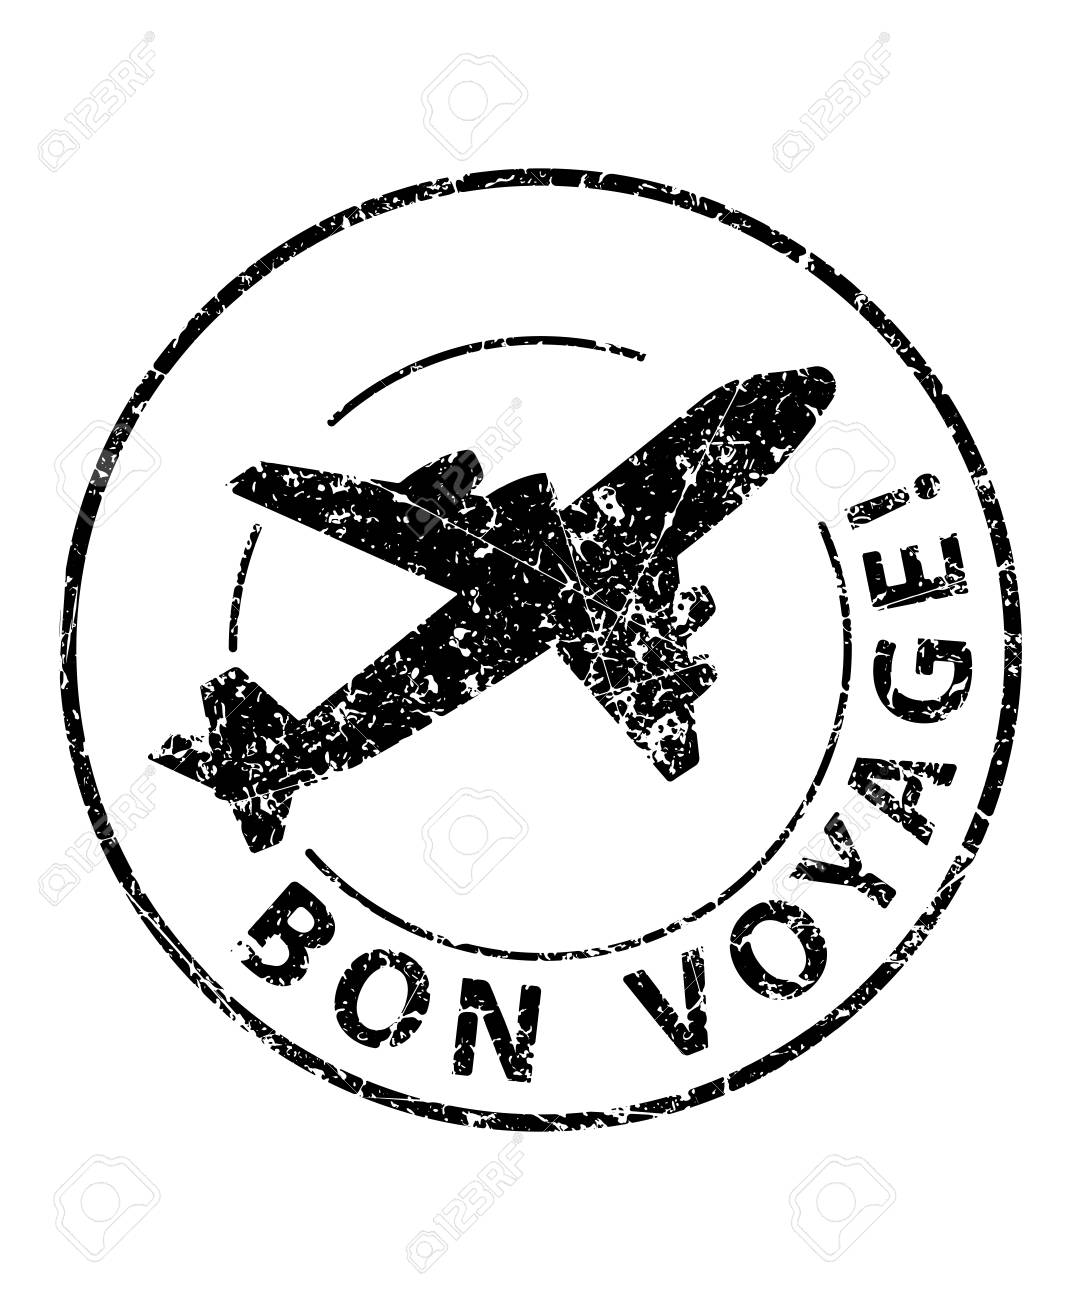 Bon voyage black rubber stamp with silhouette of airplane.